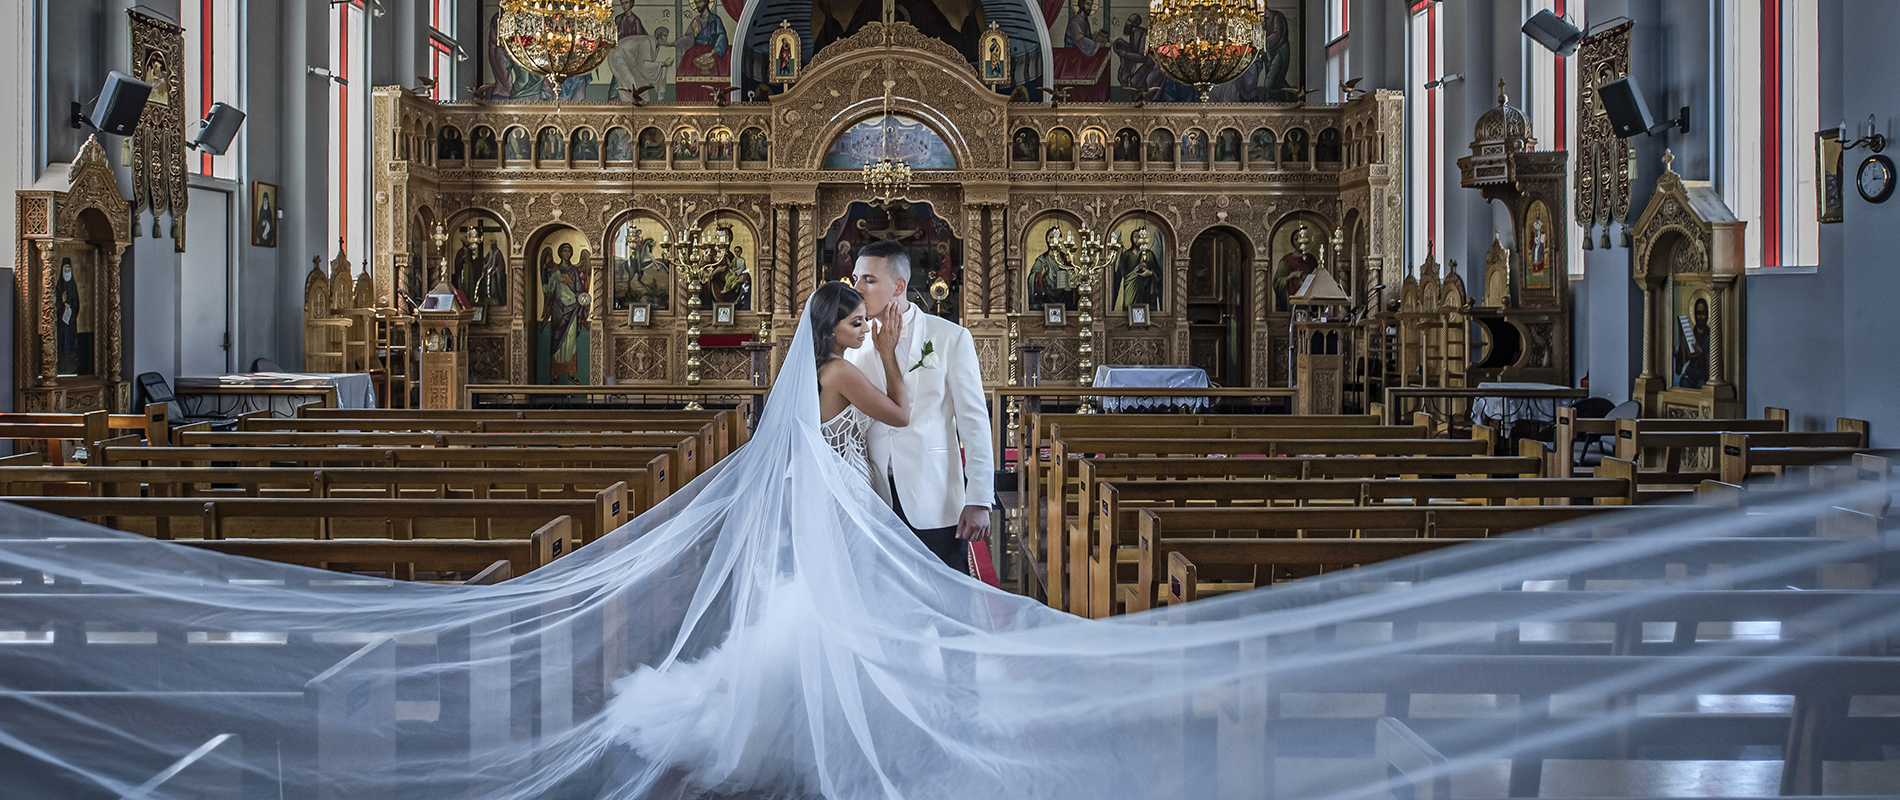 Greek orthodox church wedding photography in adelaide